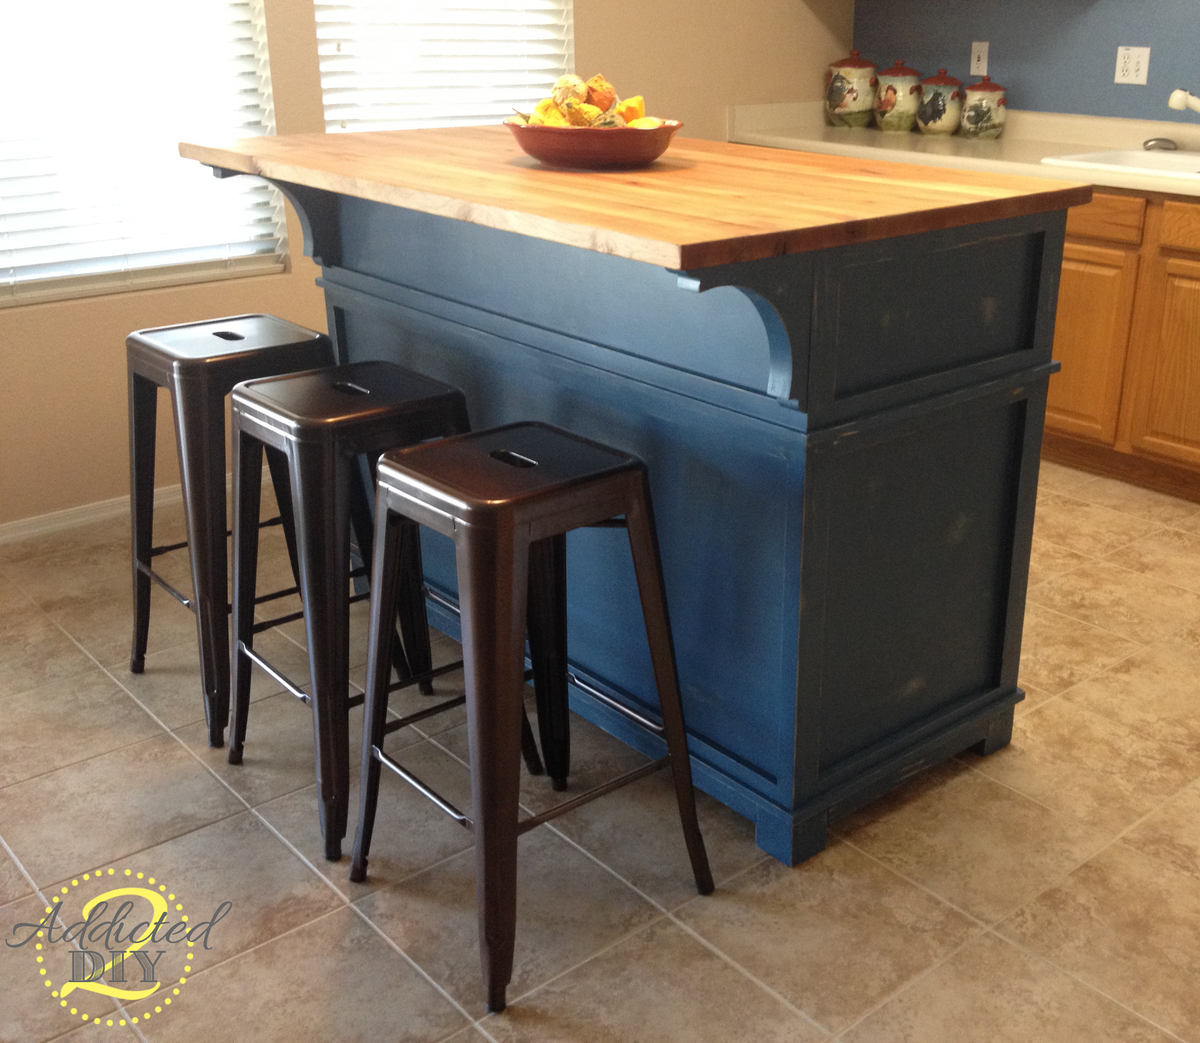 Diy Kitchen Island Simple Diy DIY Kitchen Island On Diy U Cirpaco - How to build your own kitchen island